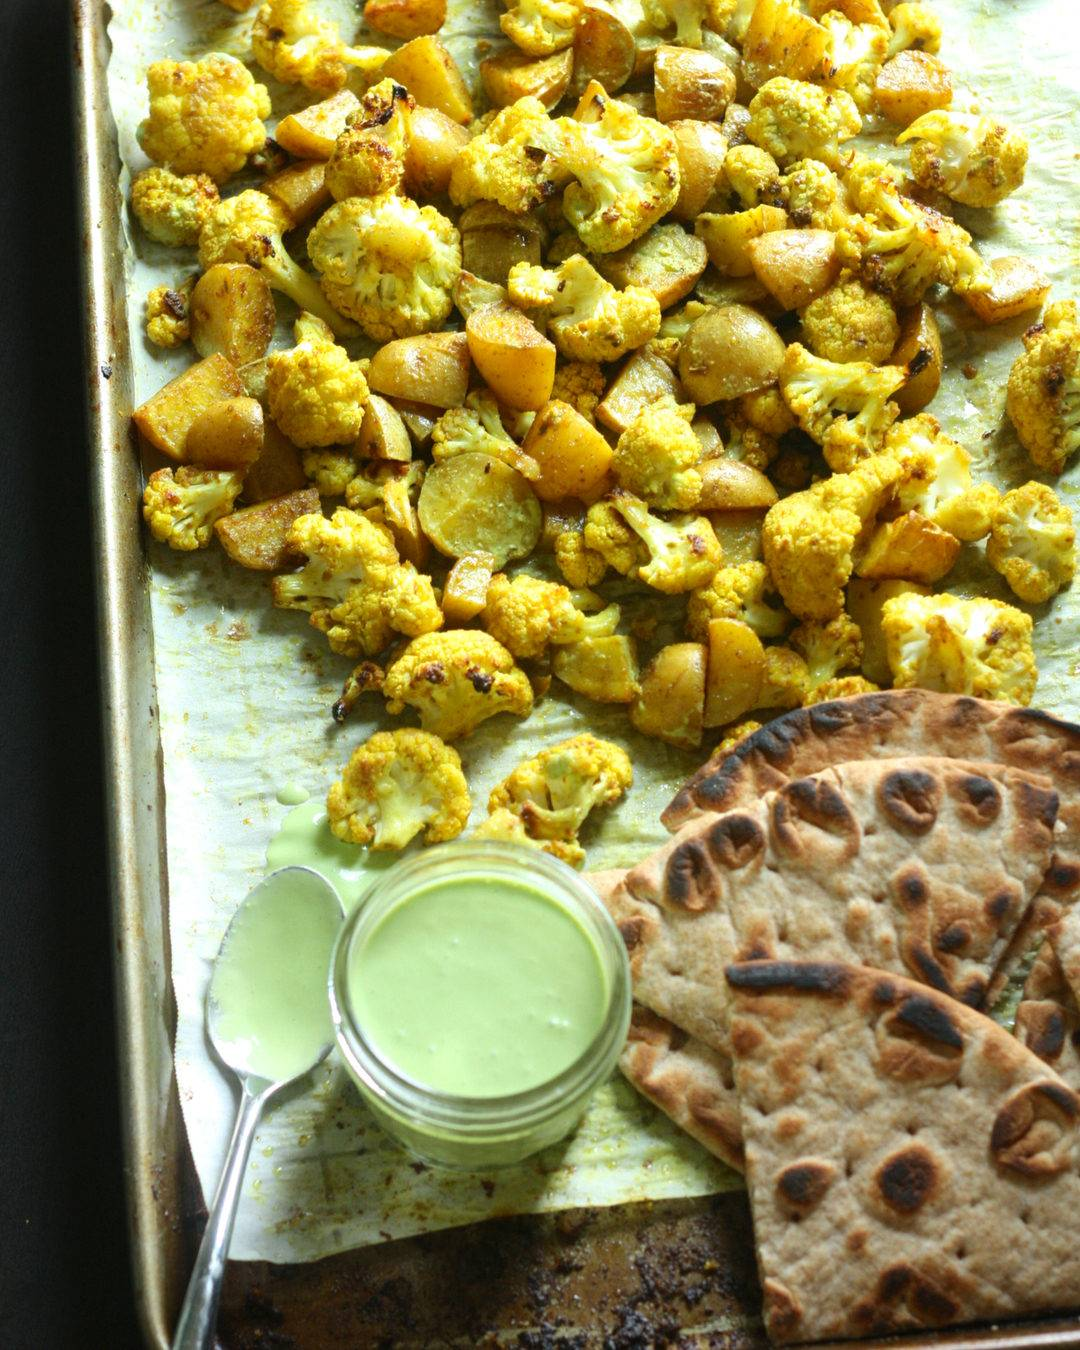 Sheetpan Aloo Gobi with Cilantro Yogurt